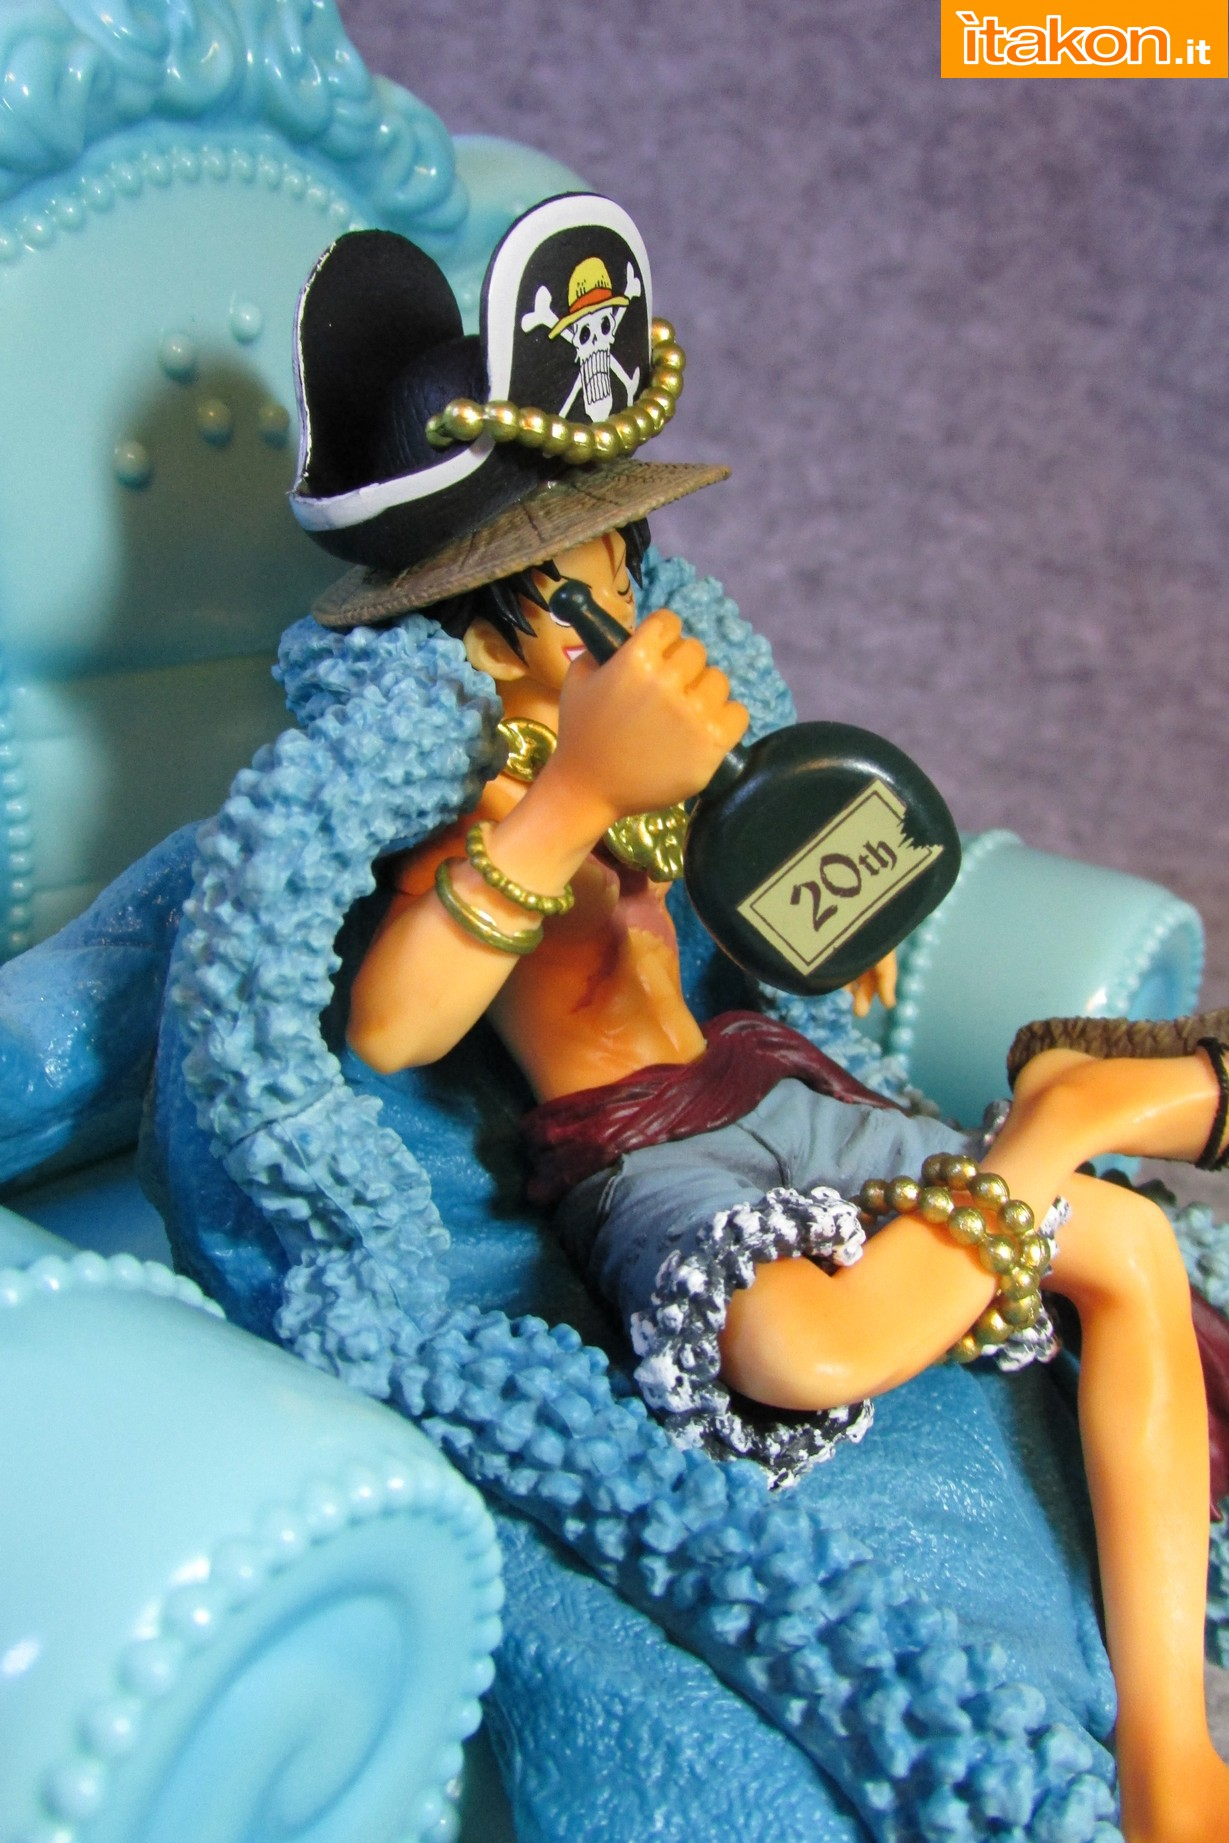 Link a Recensione Review Monkey D. Luffy One Piece 20th Anniversary ver. Figuarts ZERO di Bandai 23